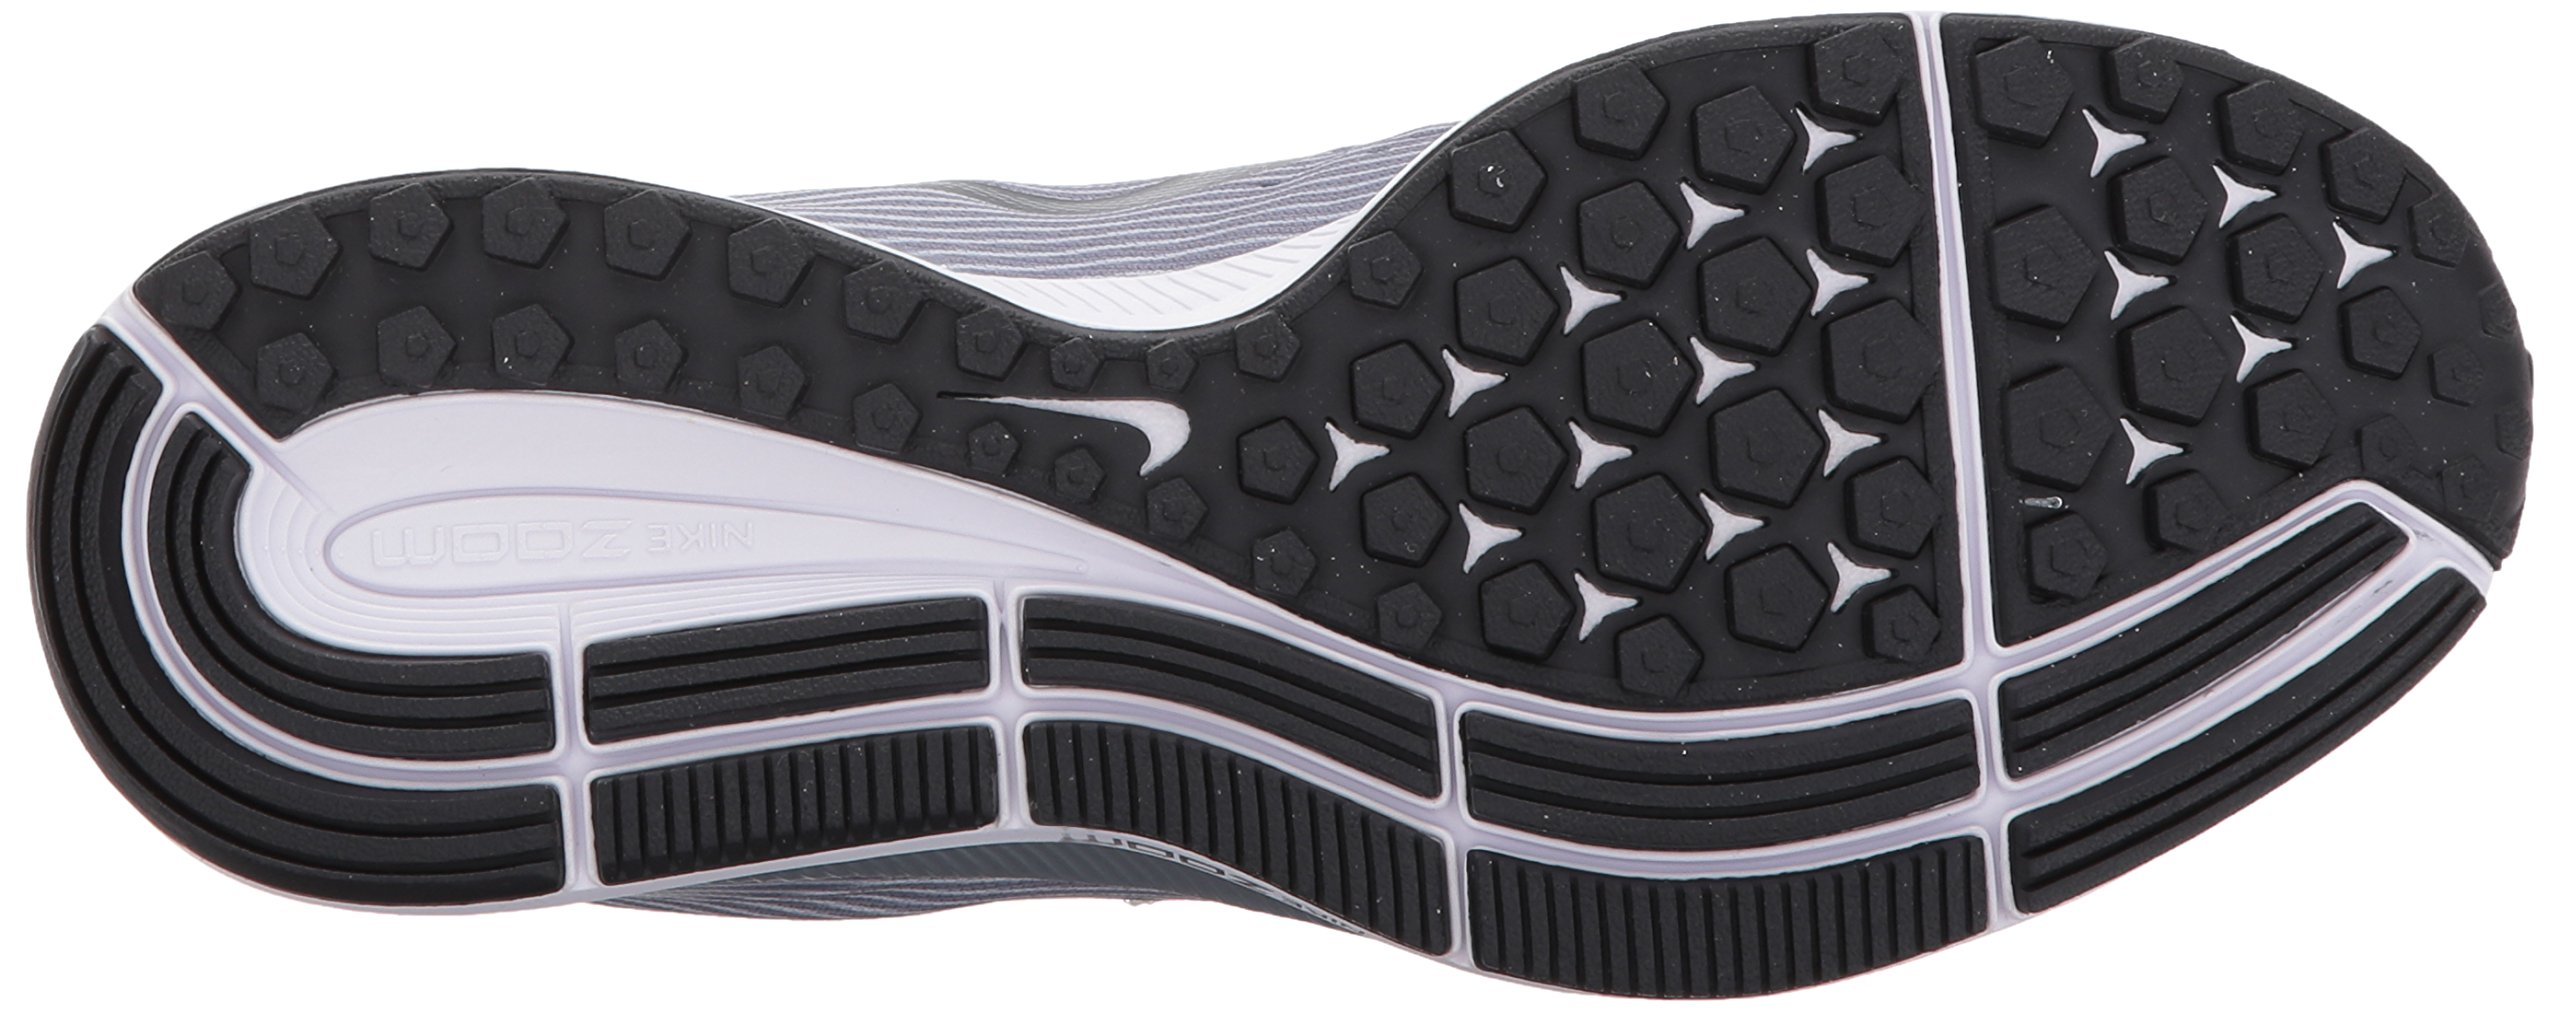 Nike Women's Air Zoom Pegasus 34 Running Shoes-Pure Plantinum/Antracite-6 by Nike (Image #3)